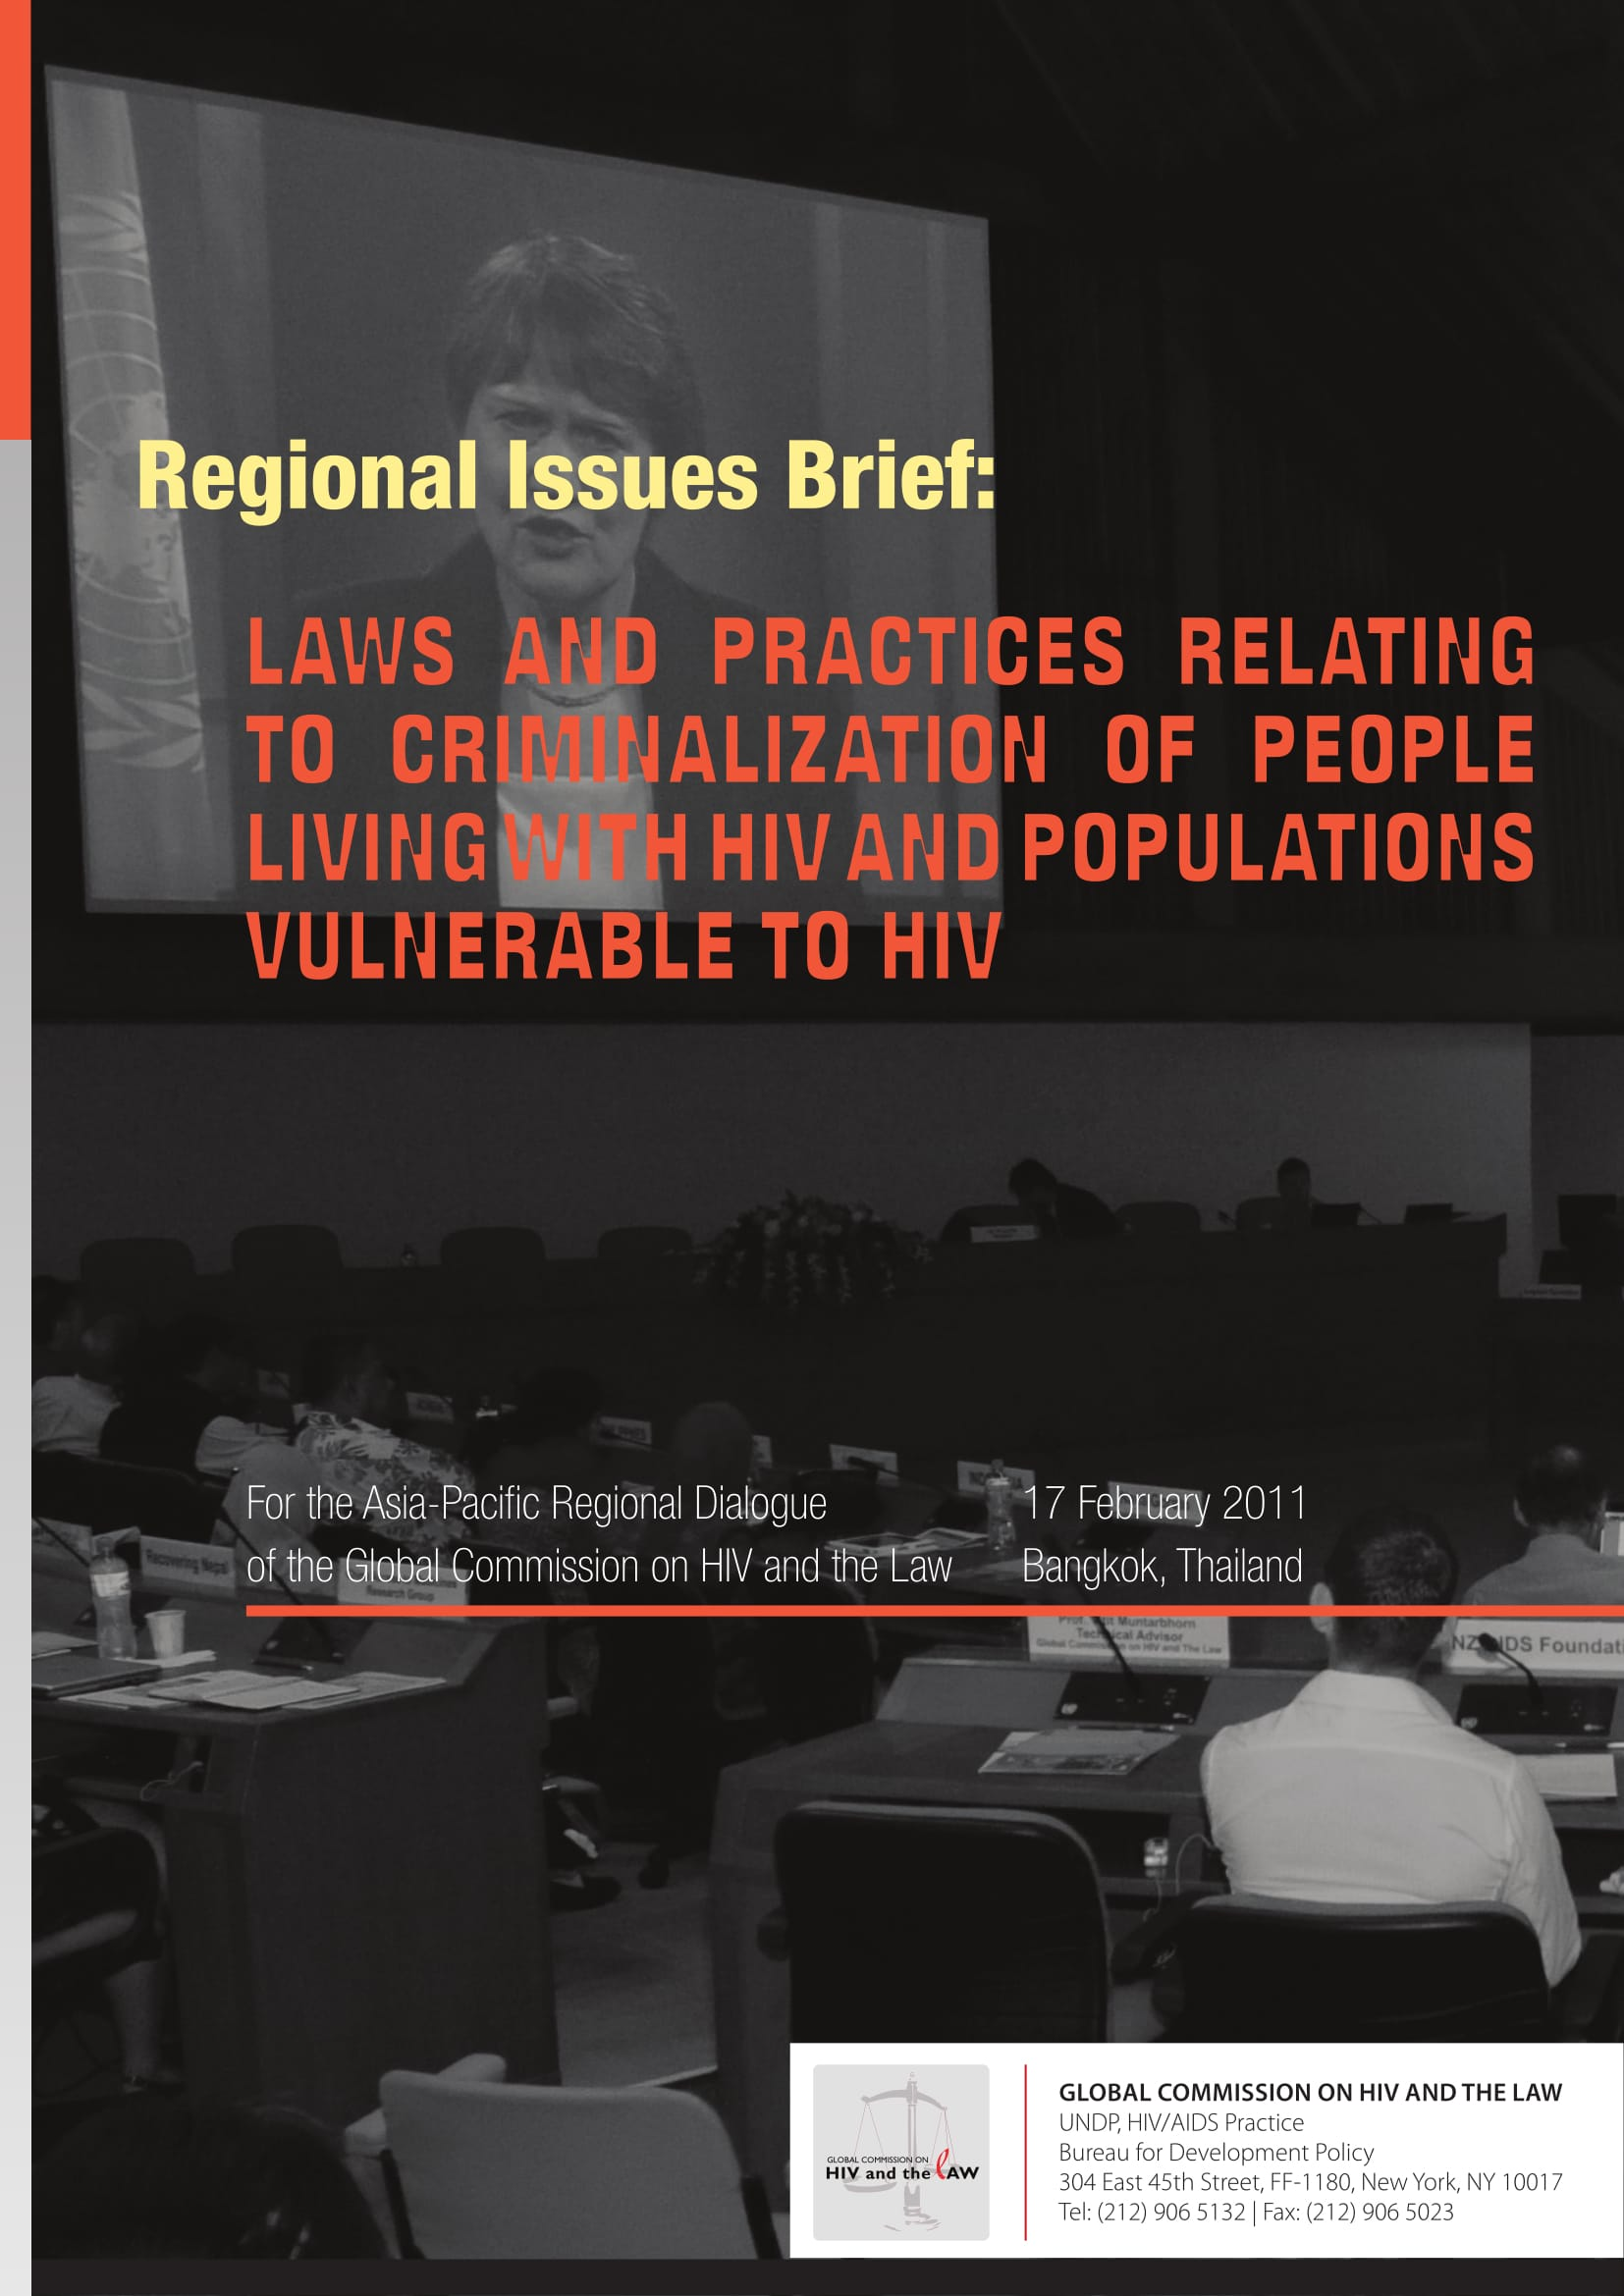 Regional issues brief: Laws and practices relating to criminalization of people living with HIV and populations vulnerable to HIV